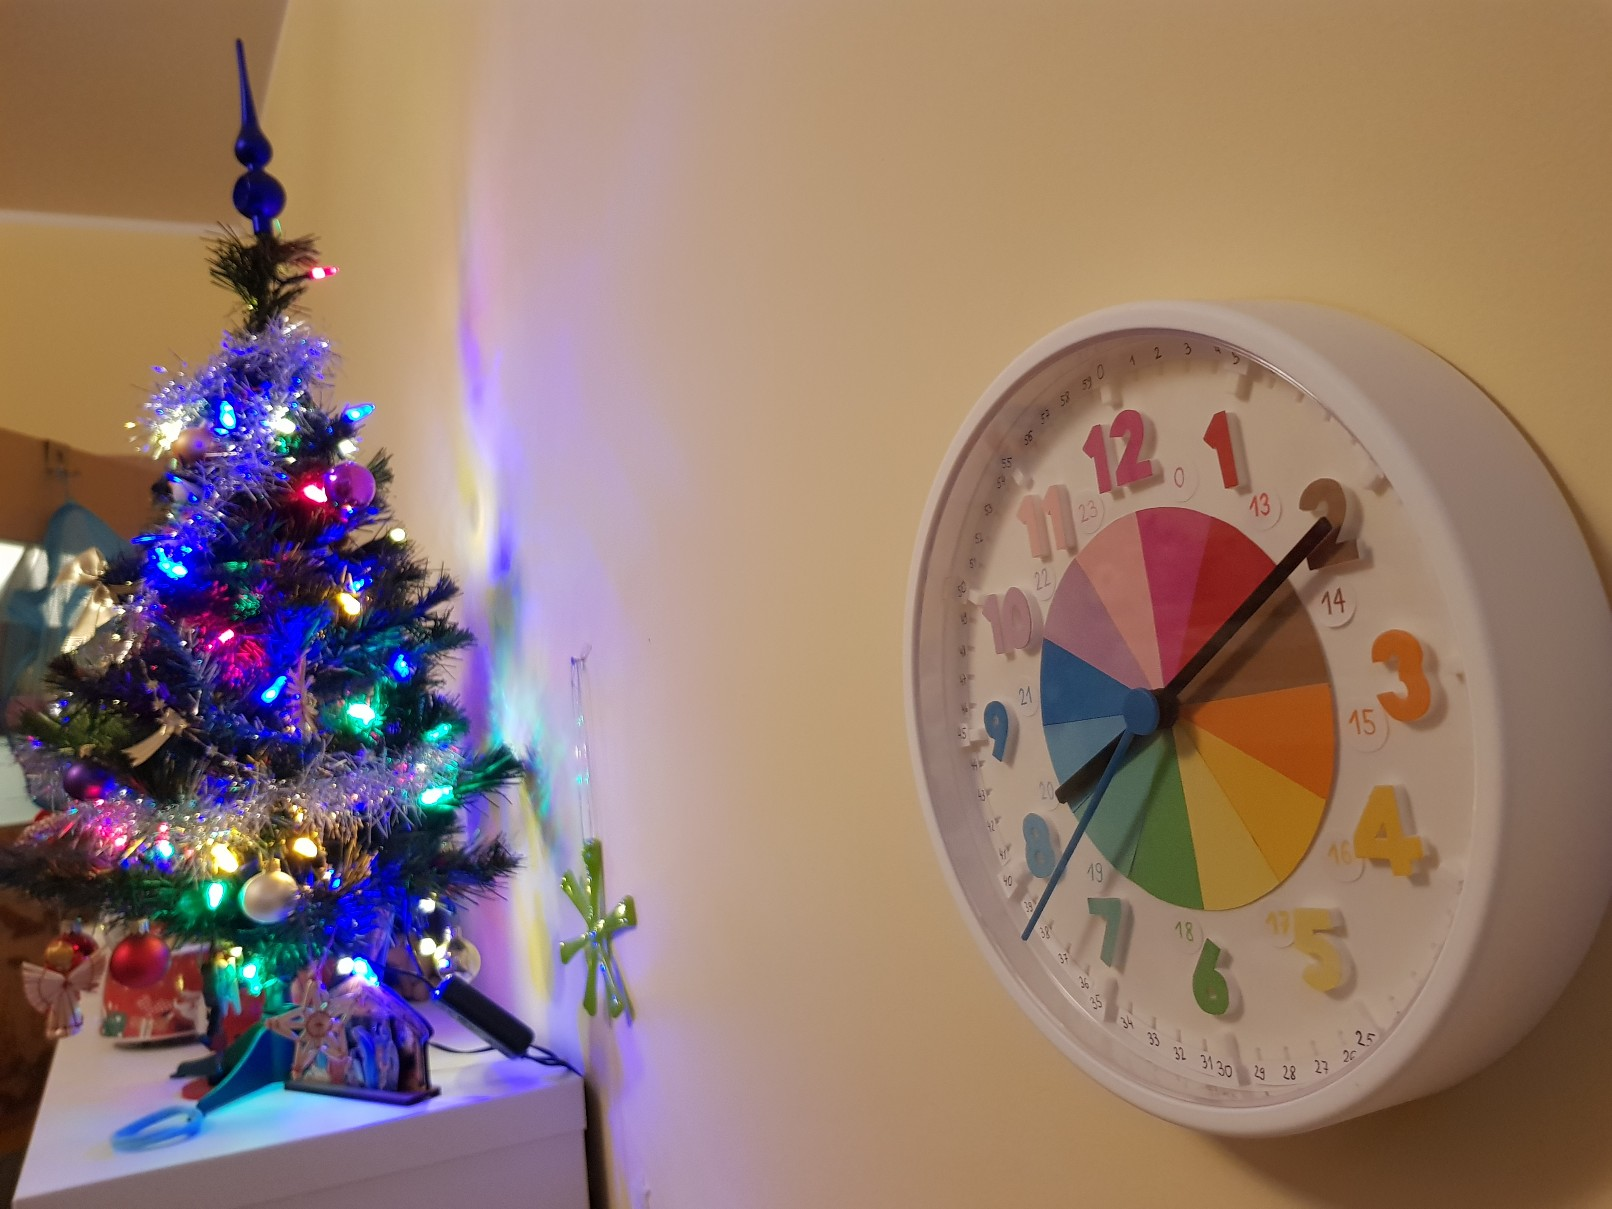 clock learning time telling christmas